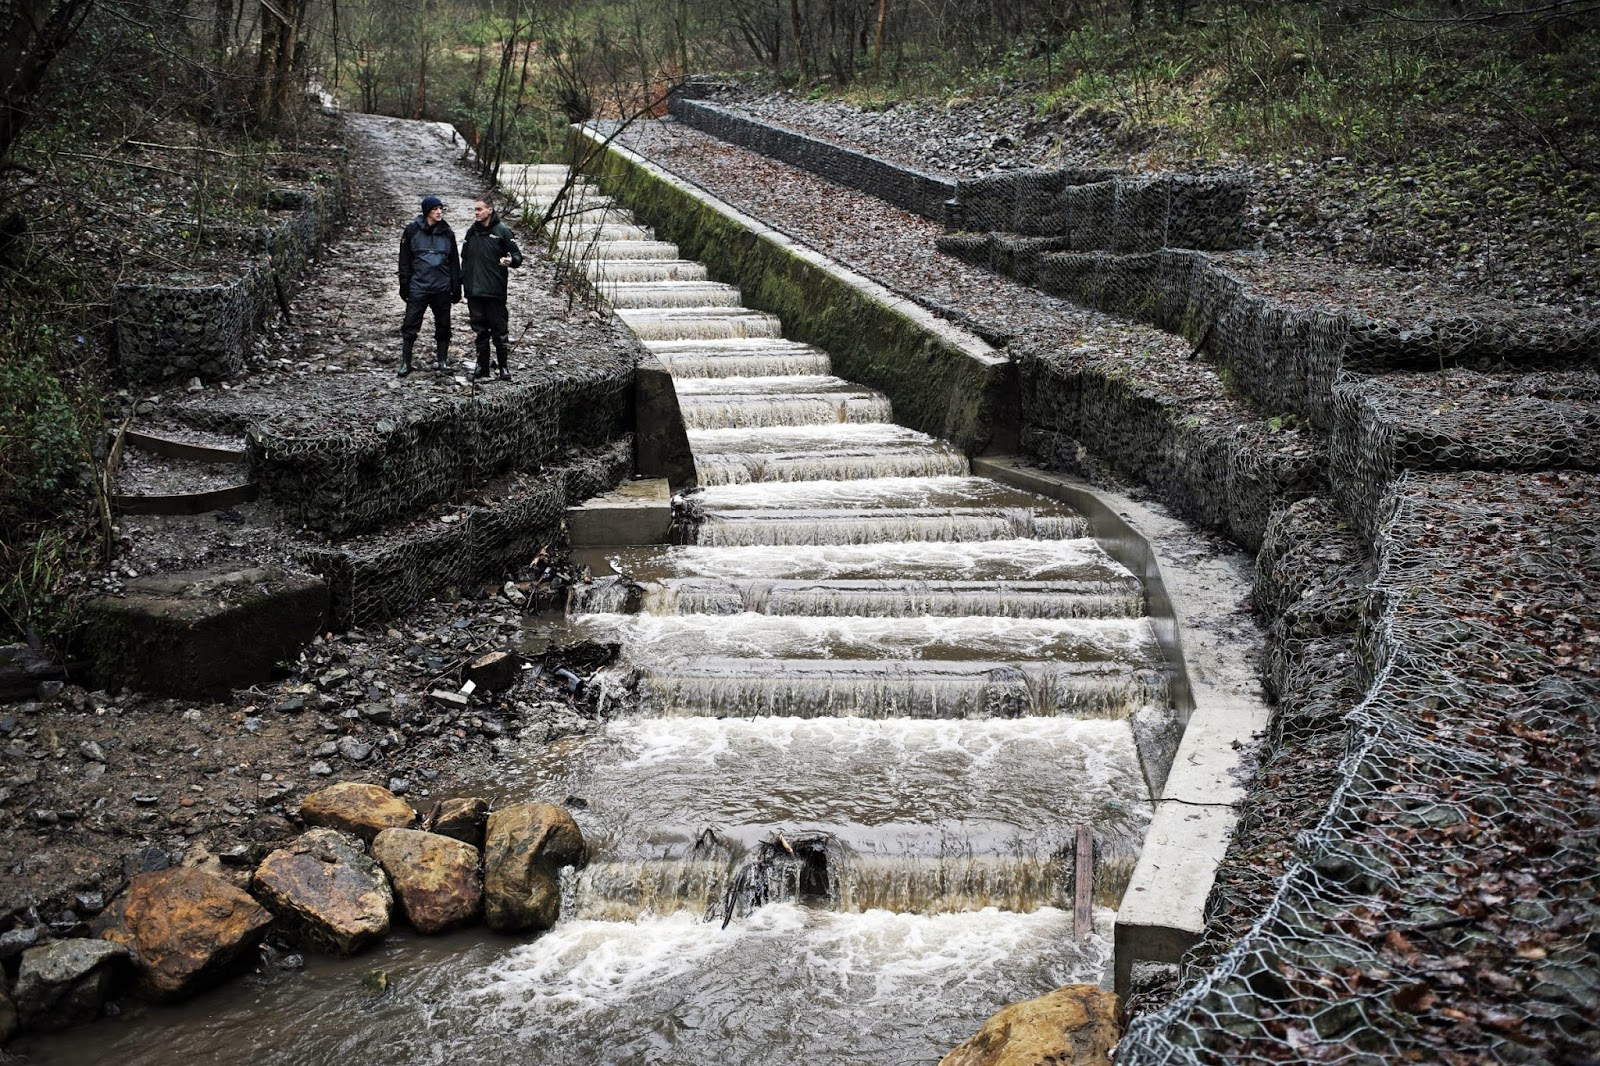 http://www.thenorthernecho.co.uk/news/11734900.Repairs_to_ancient_fish_pass_now_complete/